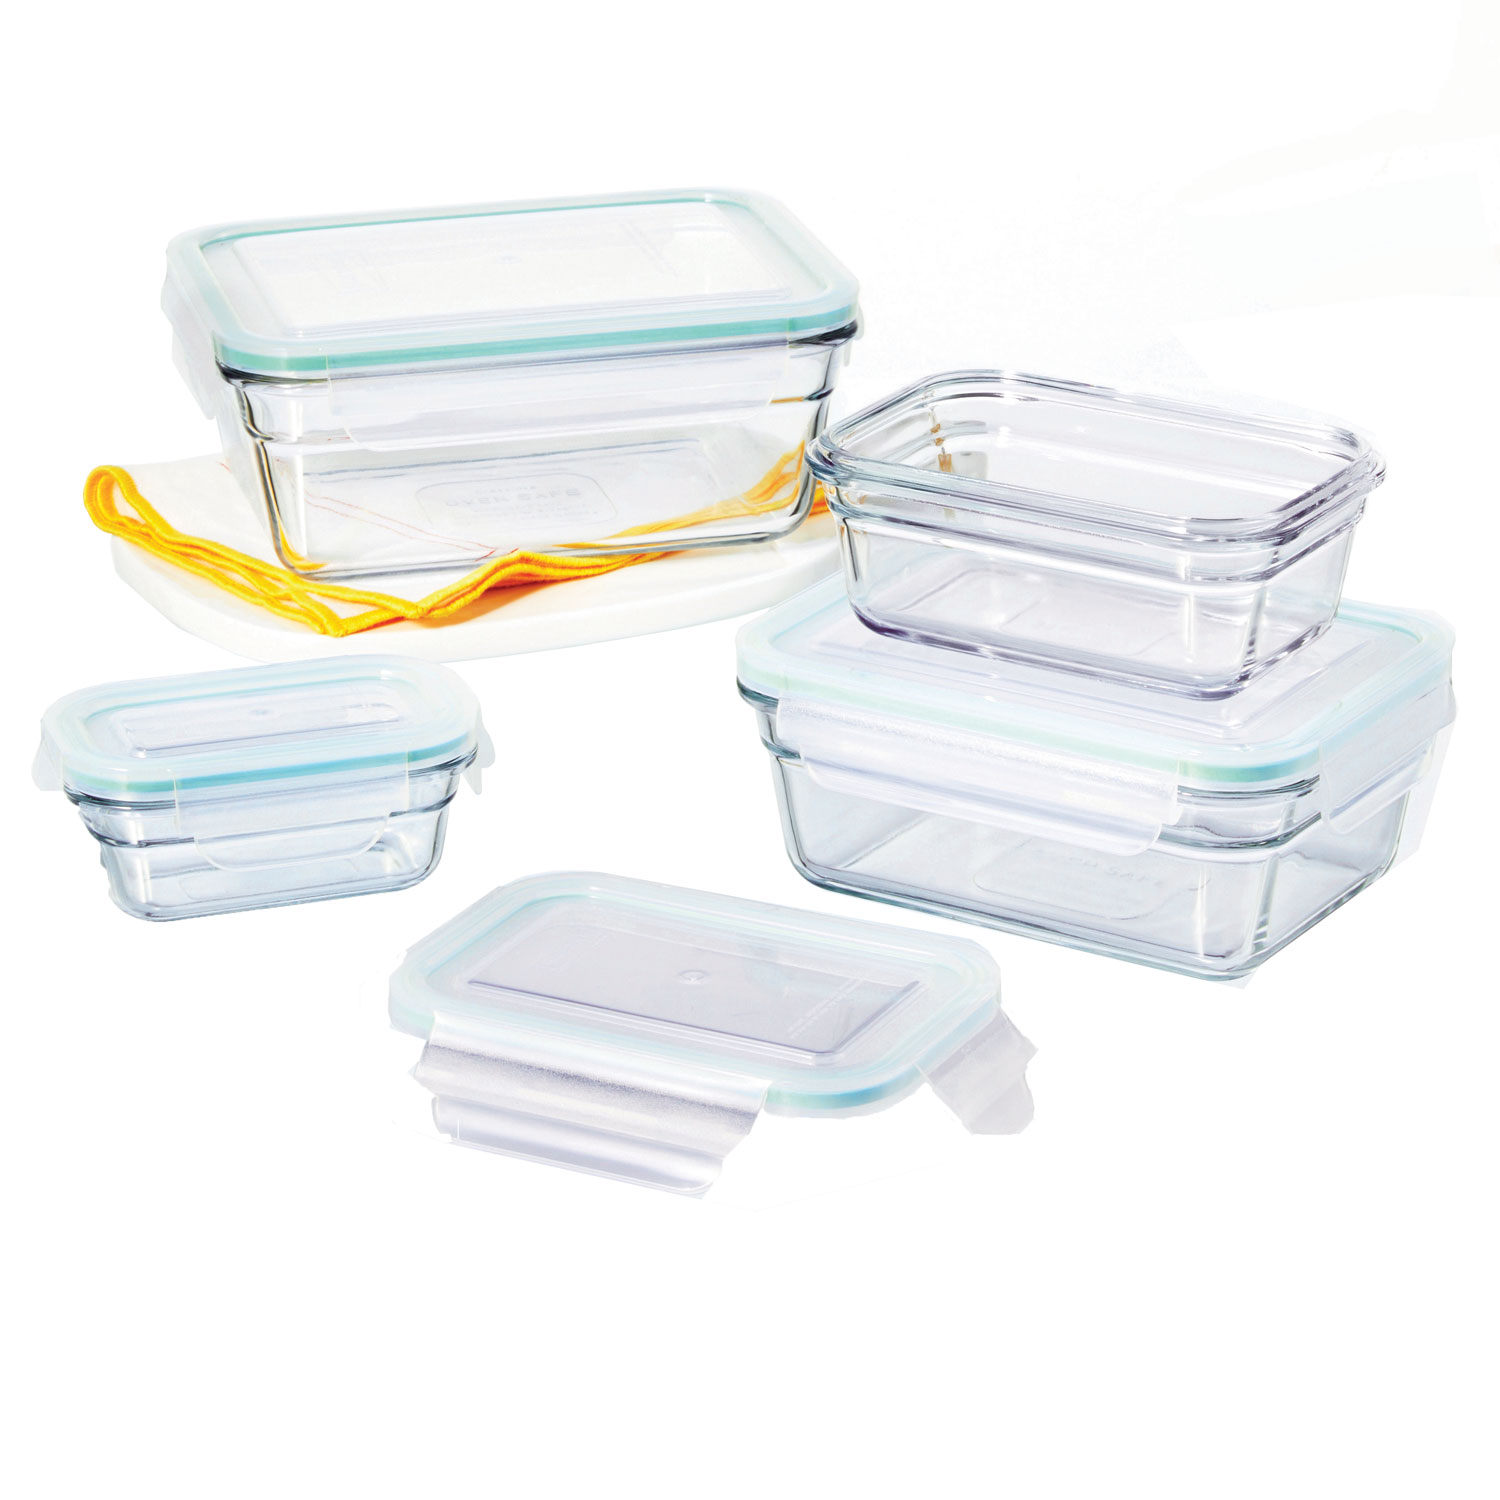 glasslock oven and microwave safe glass food storage containers 8 piece set walmart com